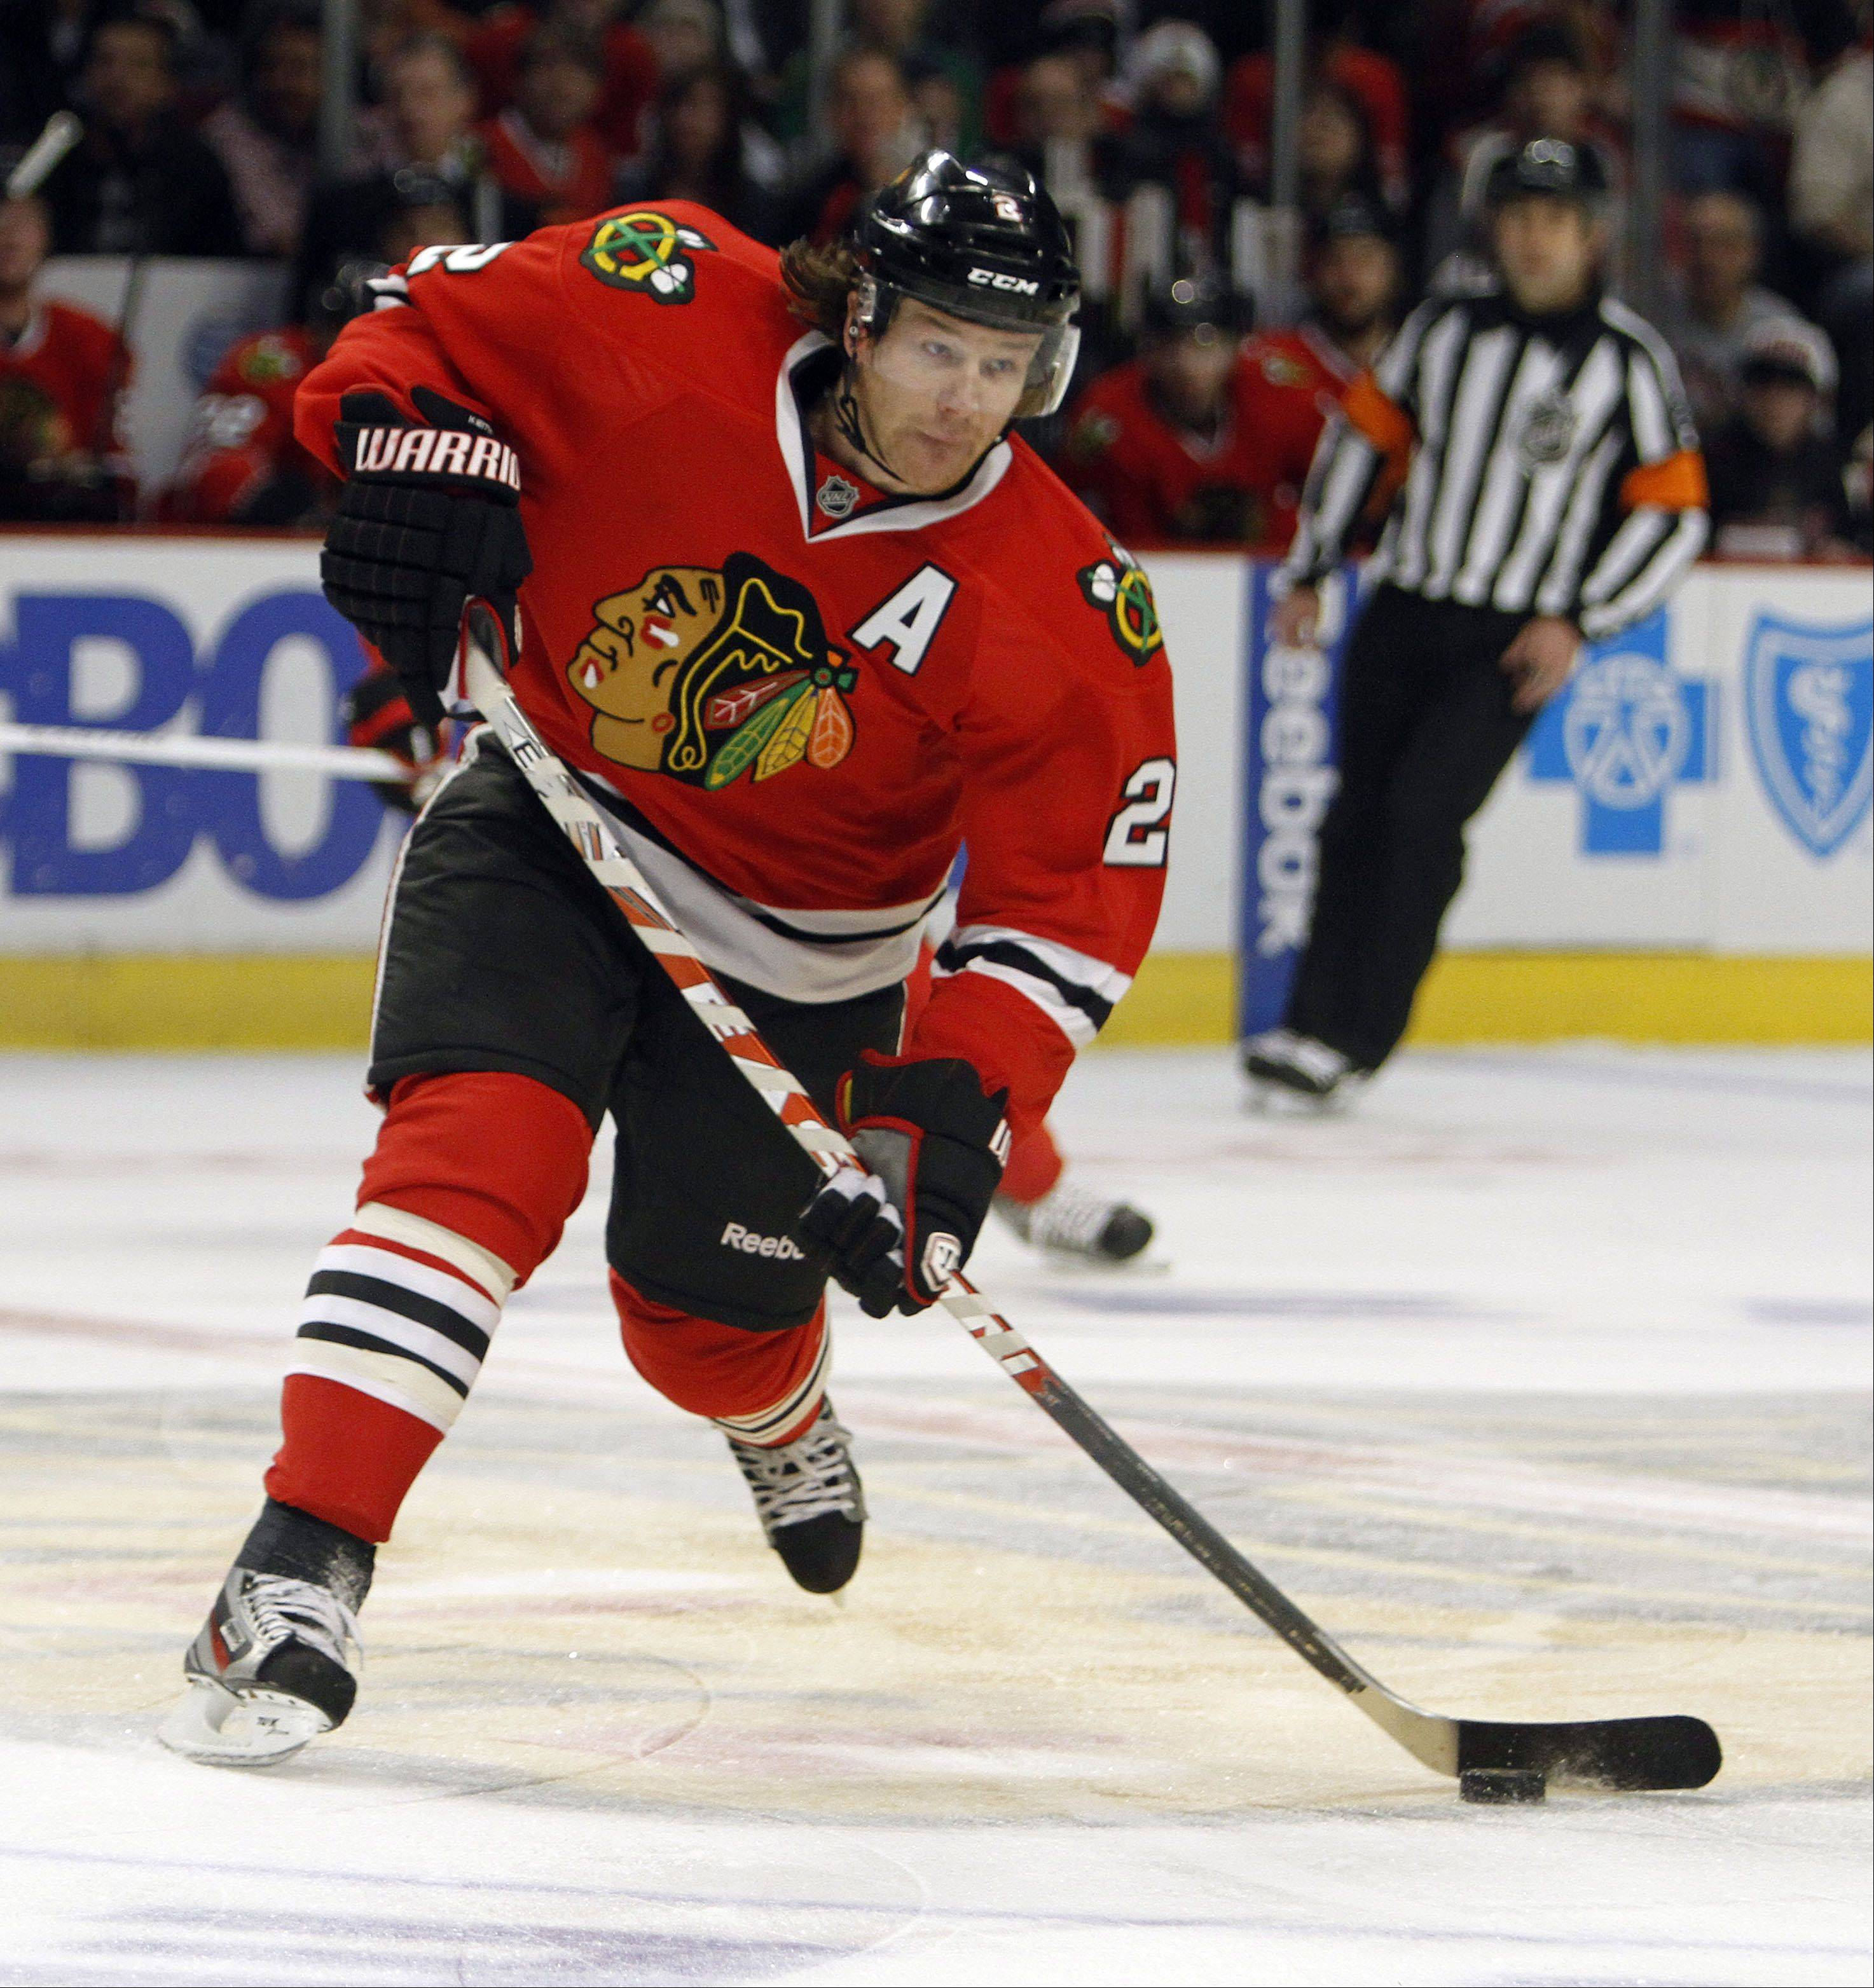 Steve Lundy/slundy@dailyherald.comBlackhawks defenseman Duncan Keith is quietly regaining the form that earned him the Norris Trophy in 2009-10, when he finished with a career-high 69 points and was plus-21, according to Tim Sassone.